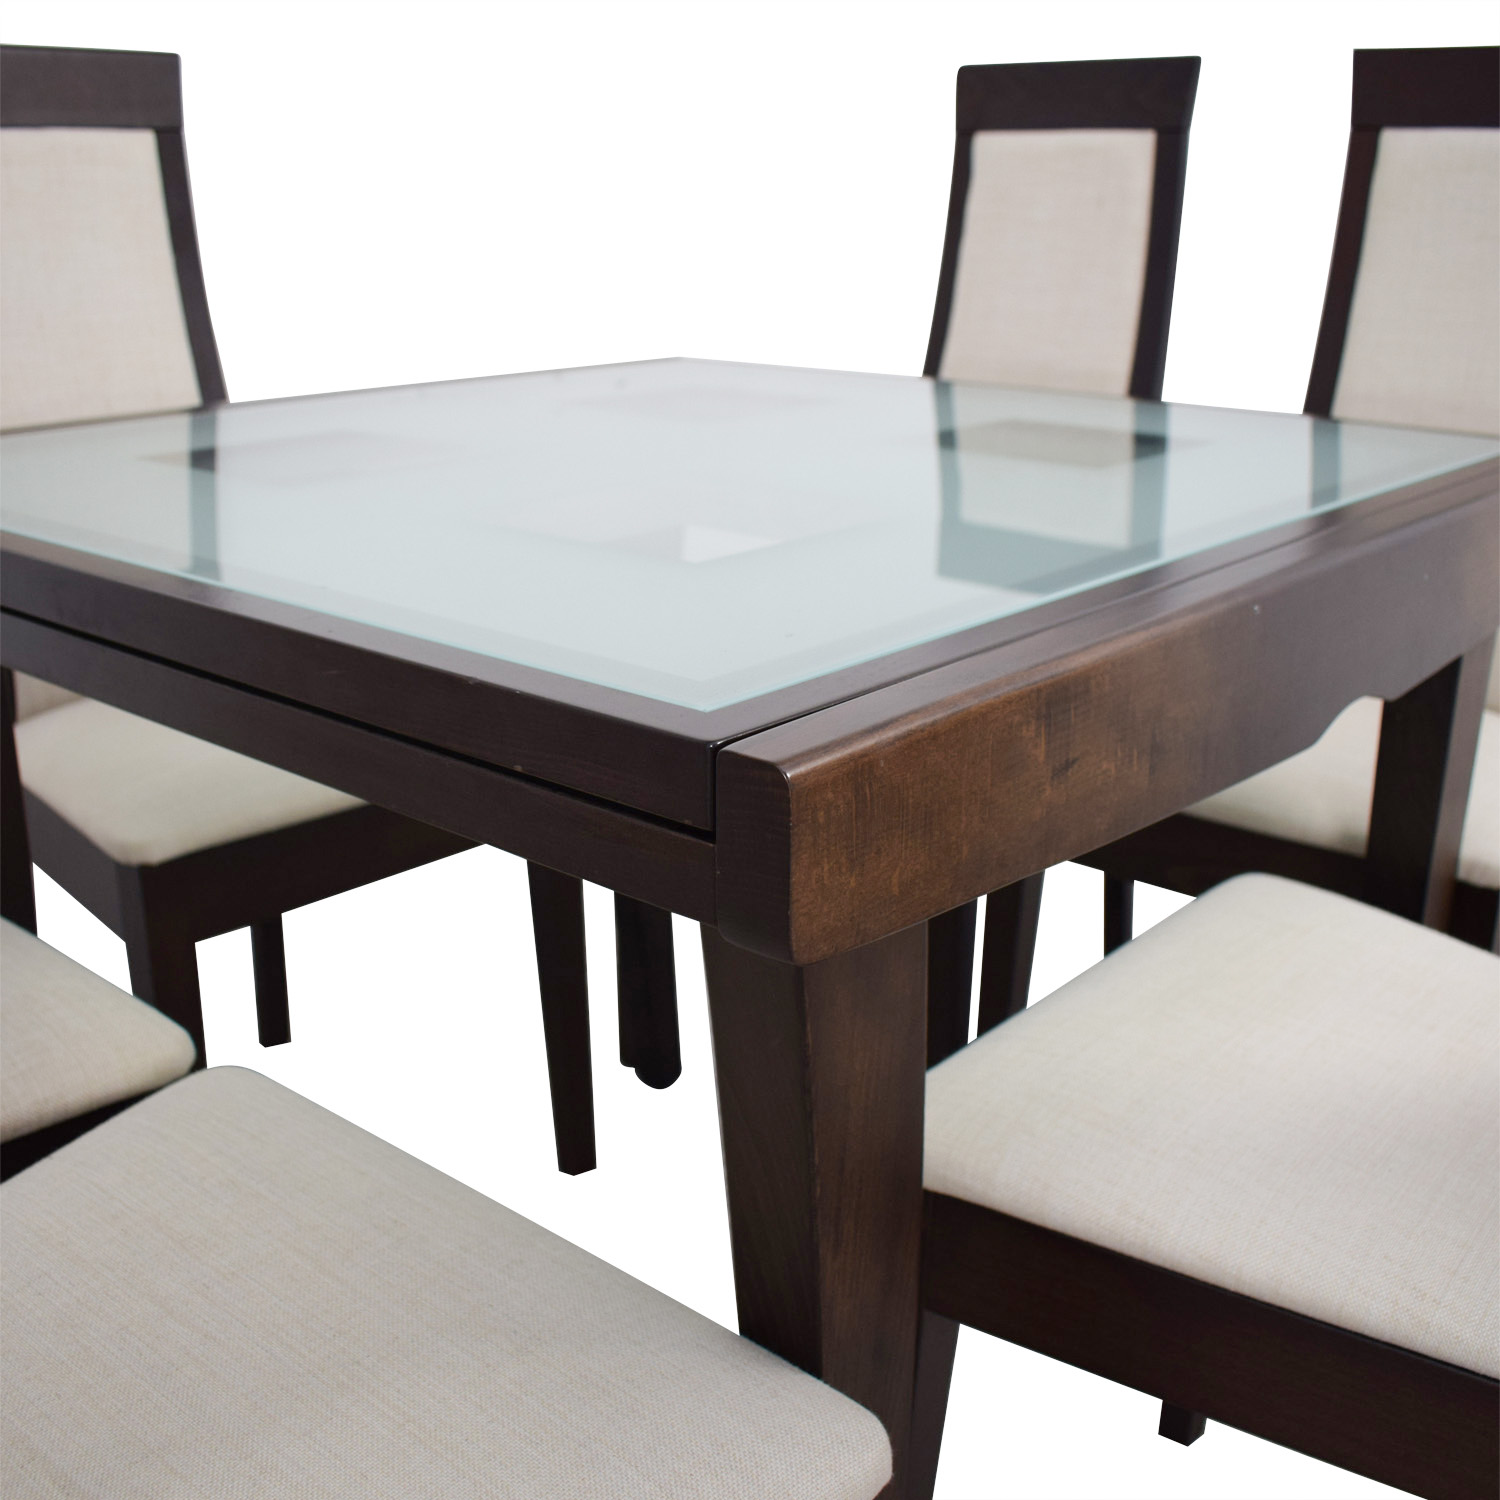 71 Off Calligaris Calligaris Extendable Glass And Wood Dining Set Tables